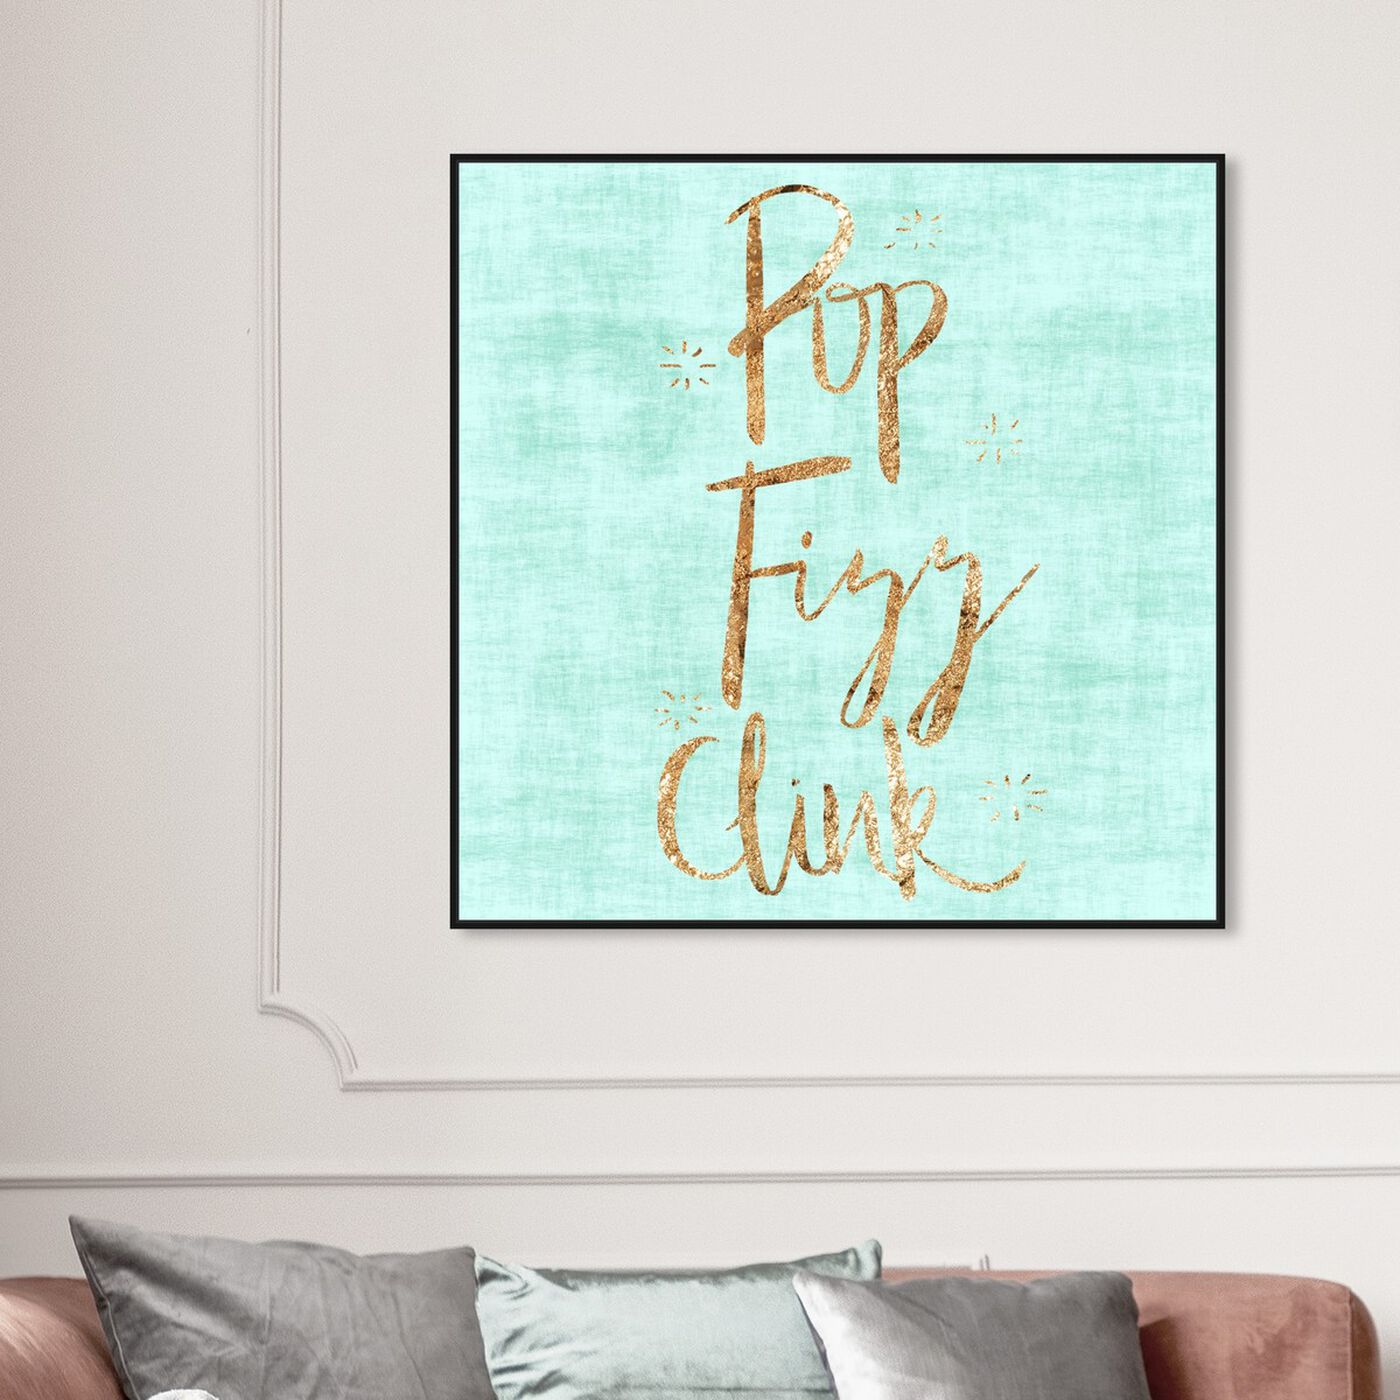 Hanging view of Pop Fizz Clink featuring typography and quotes and funny quotes and sayings art.